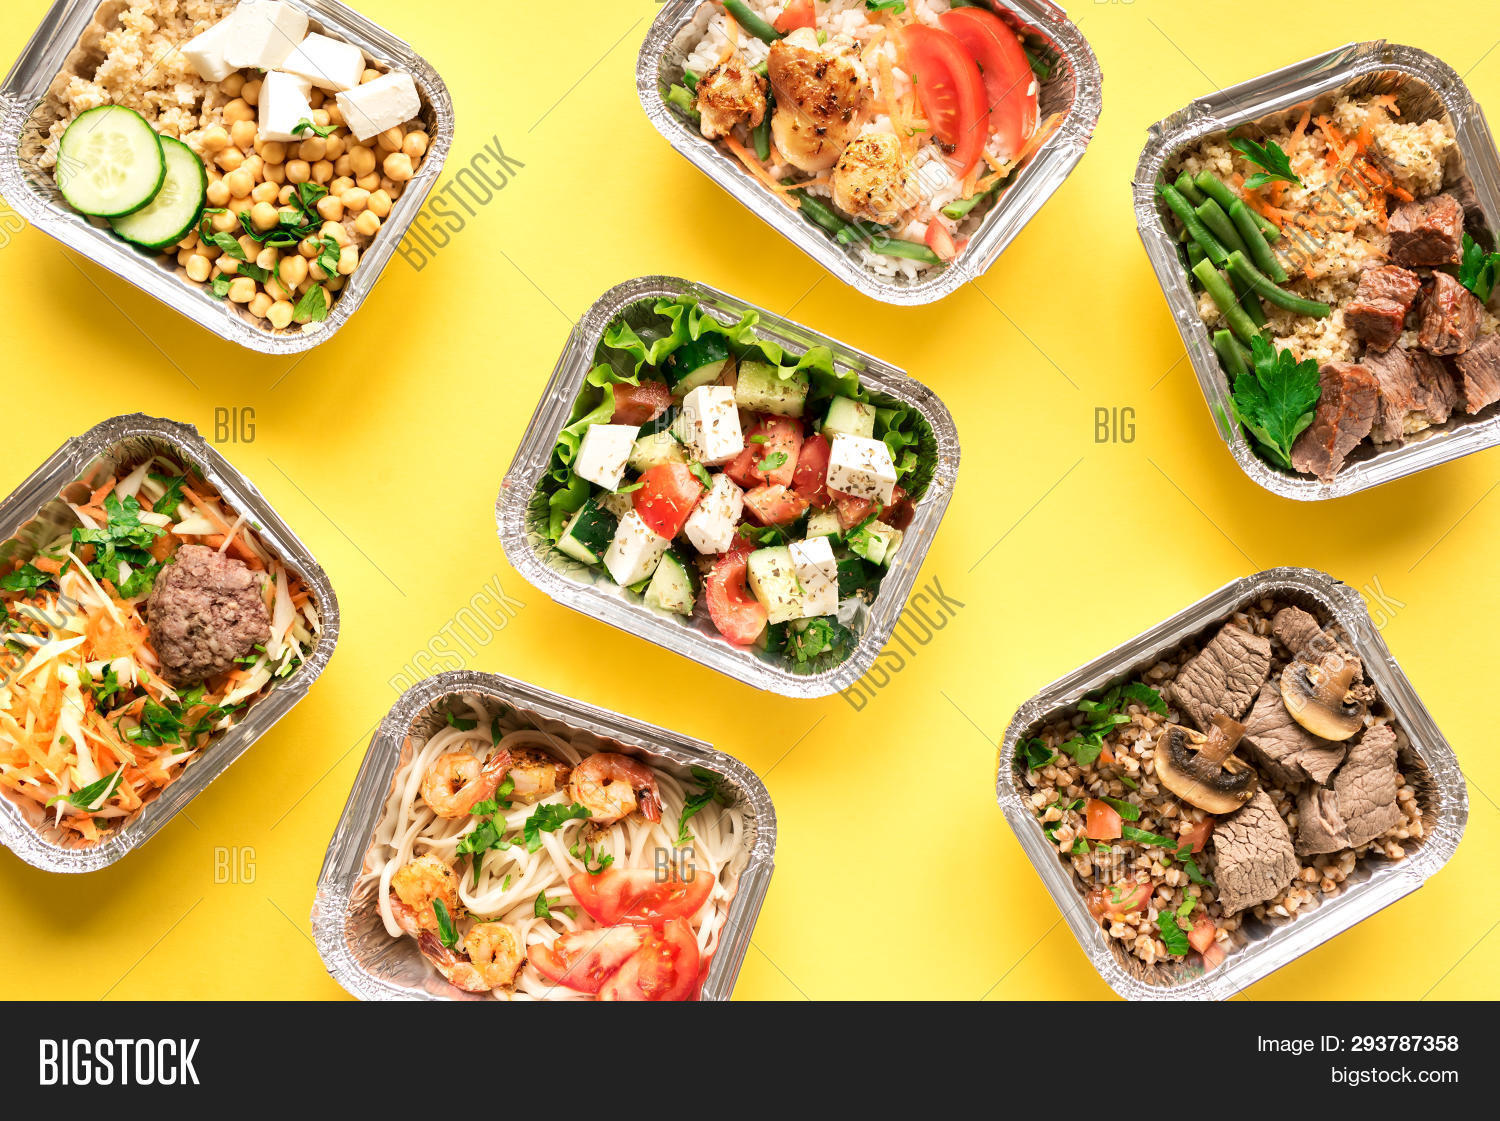 Healthy food delivery. Take away of organic daily meal on yellow, copy space. Clean eating concept, healthy food in foil boxes, fitness nutrition plan, top view.